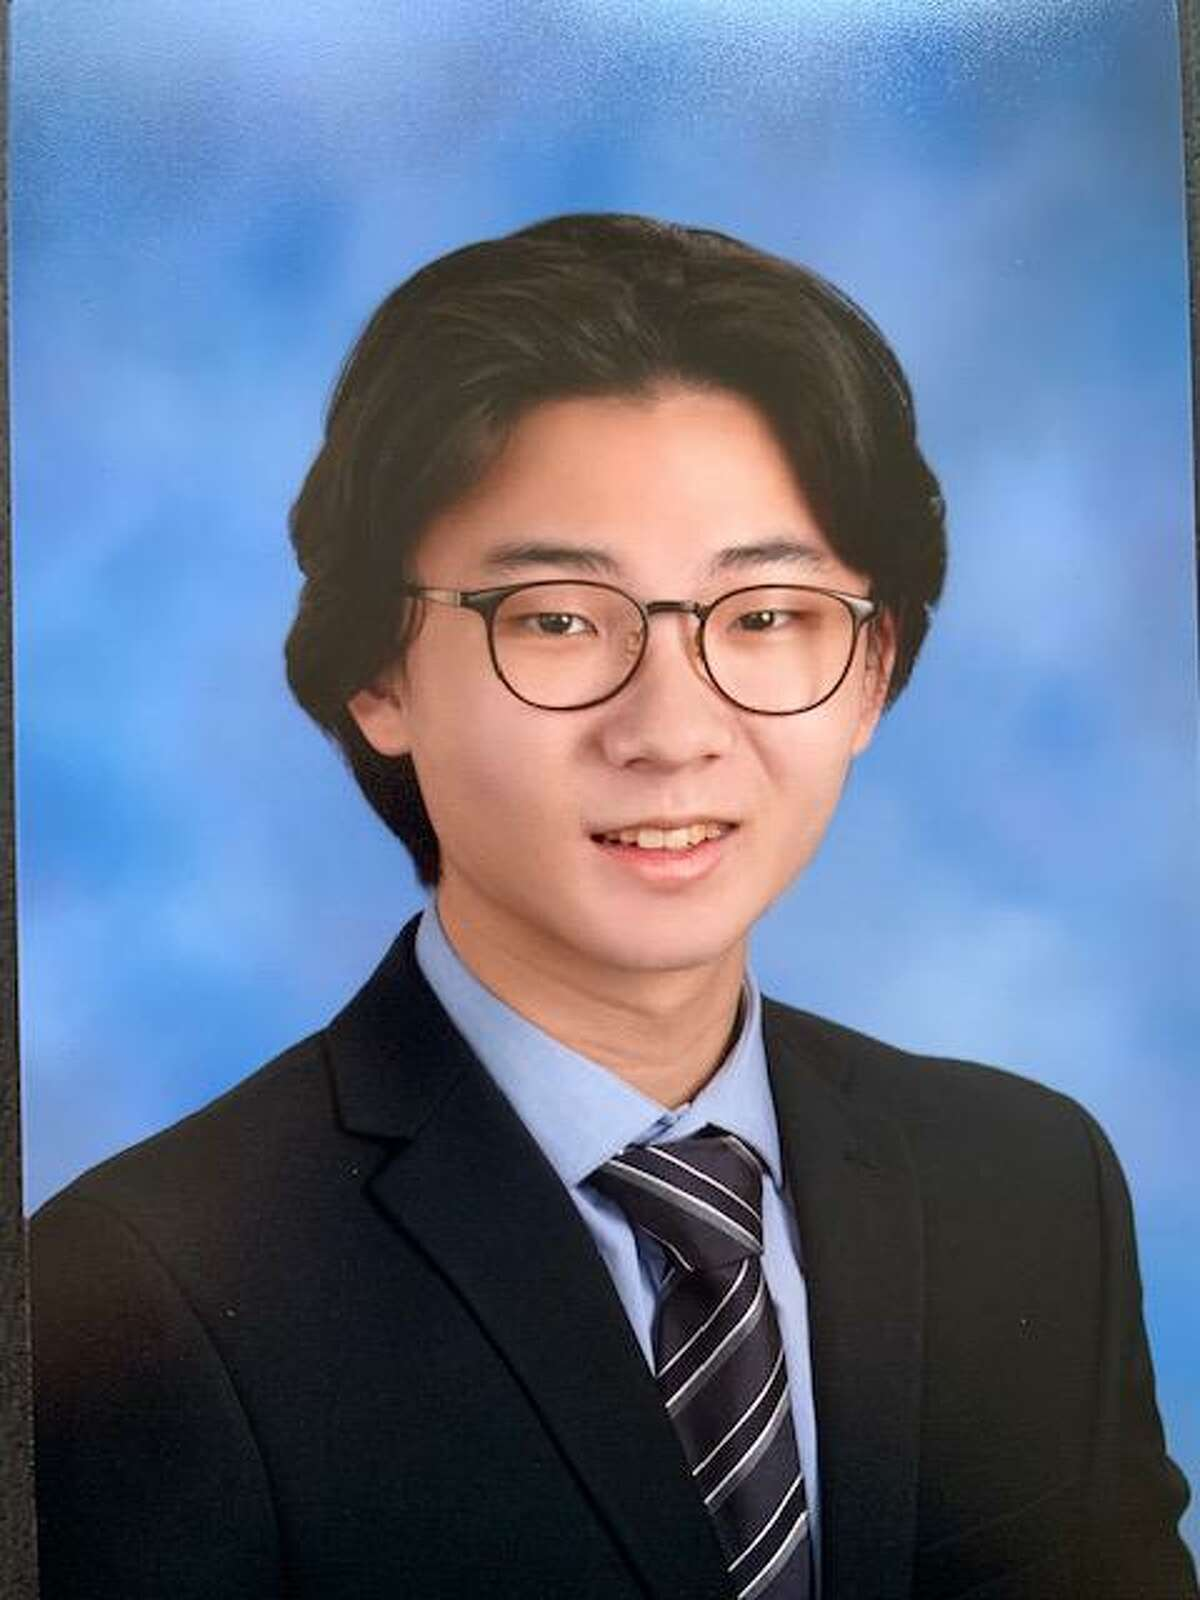 Gerald Kim, who is from Fairfield, is one of four winners of The Hartford Symphony Orchestra's 43rd Young Artists Competition.